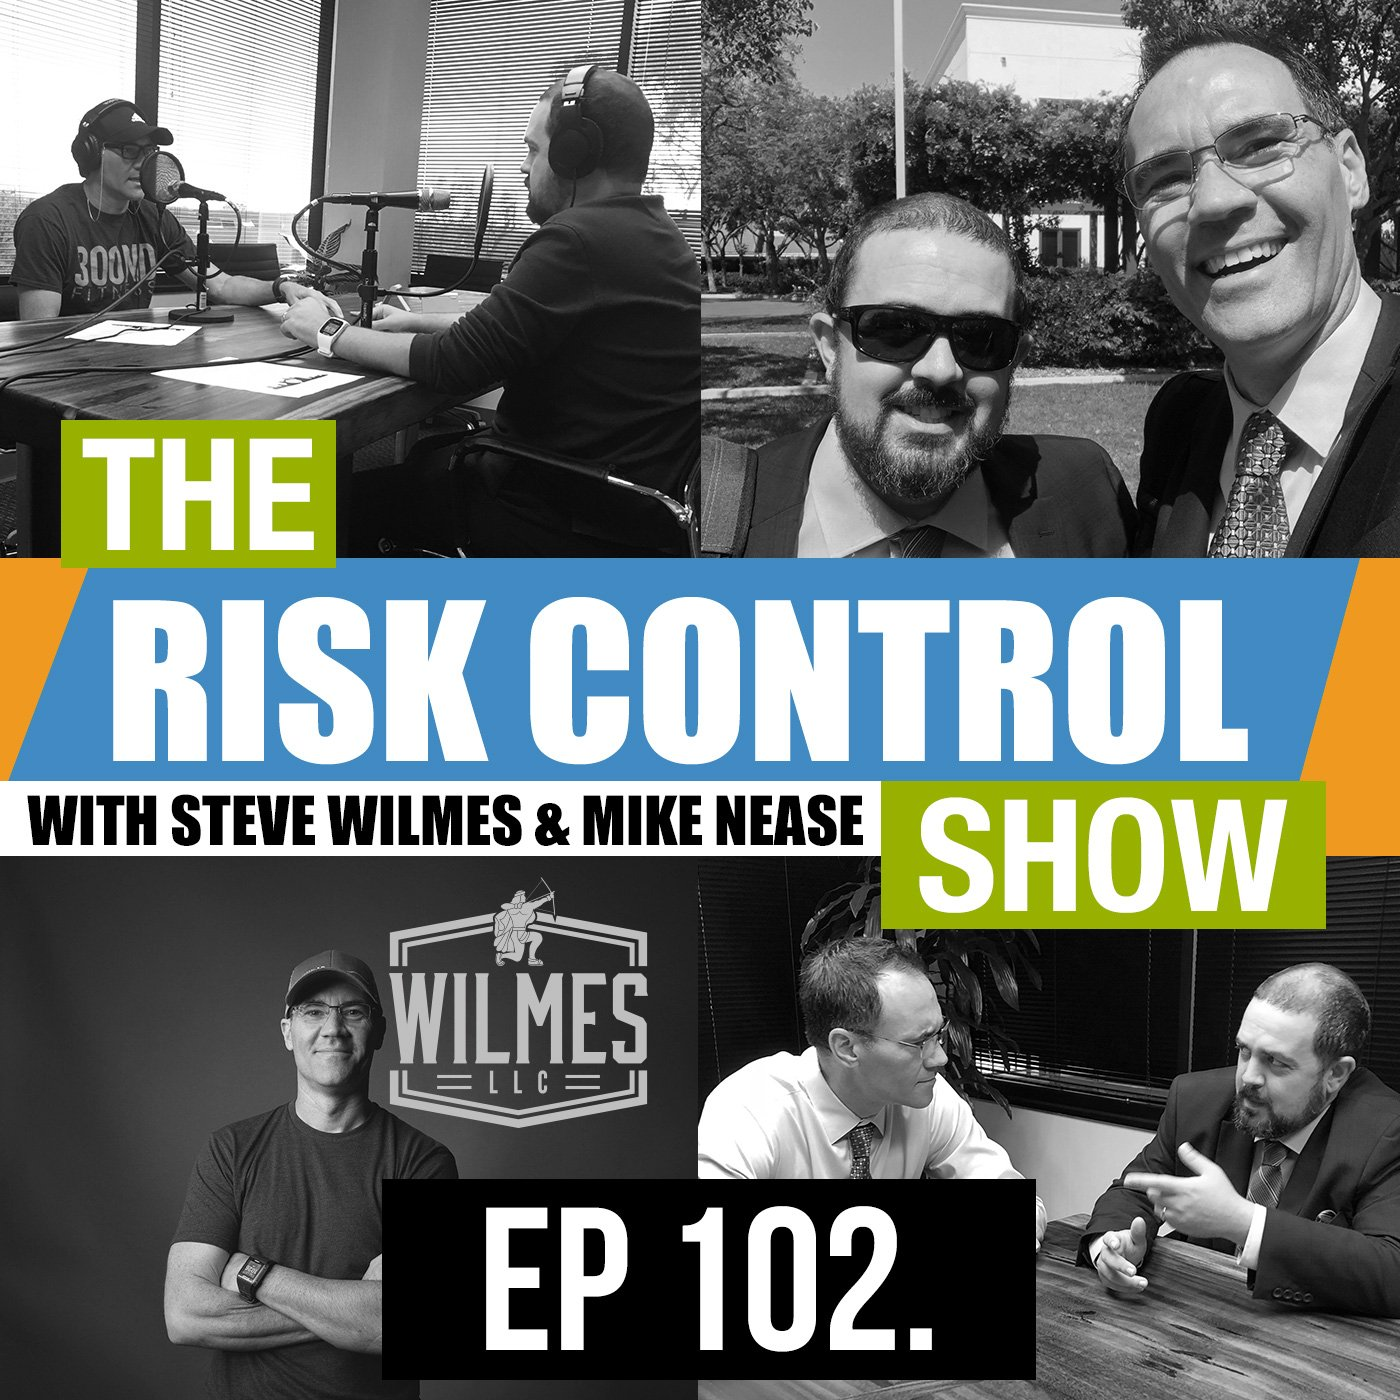 The Risk Control Show Episode 102 - How To Kill The Bird Scooter In Your City